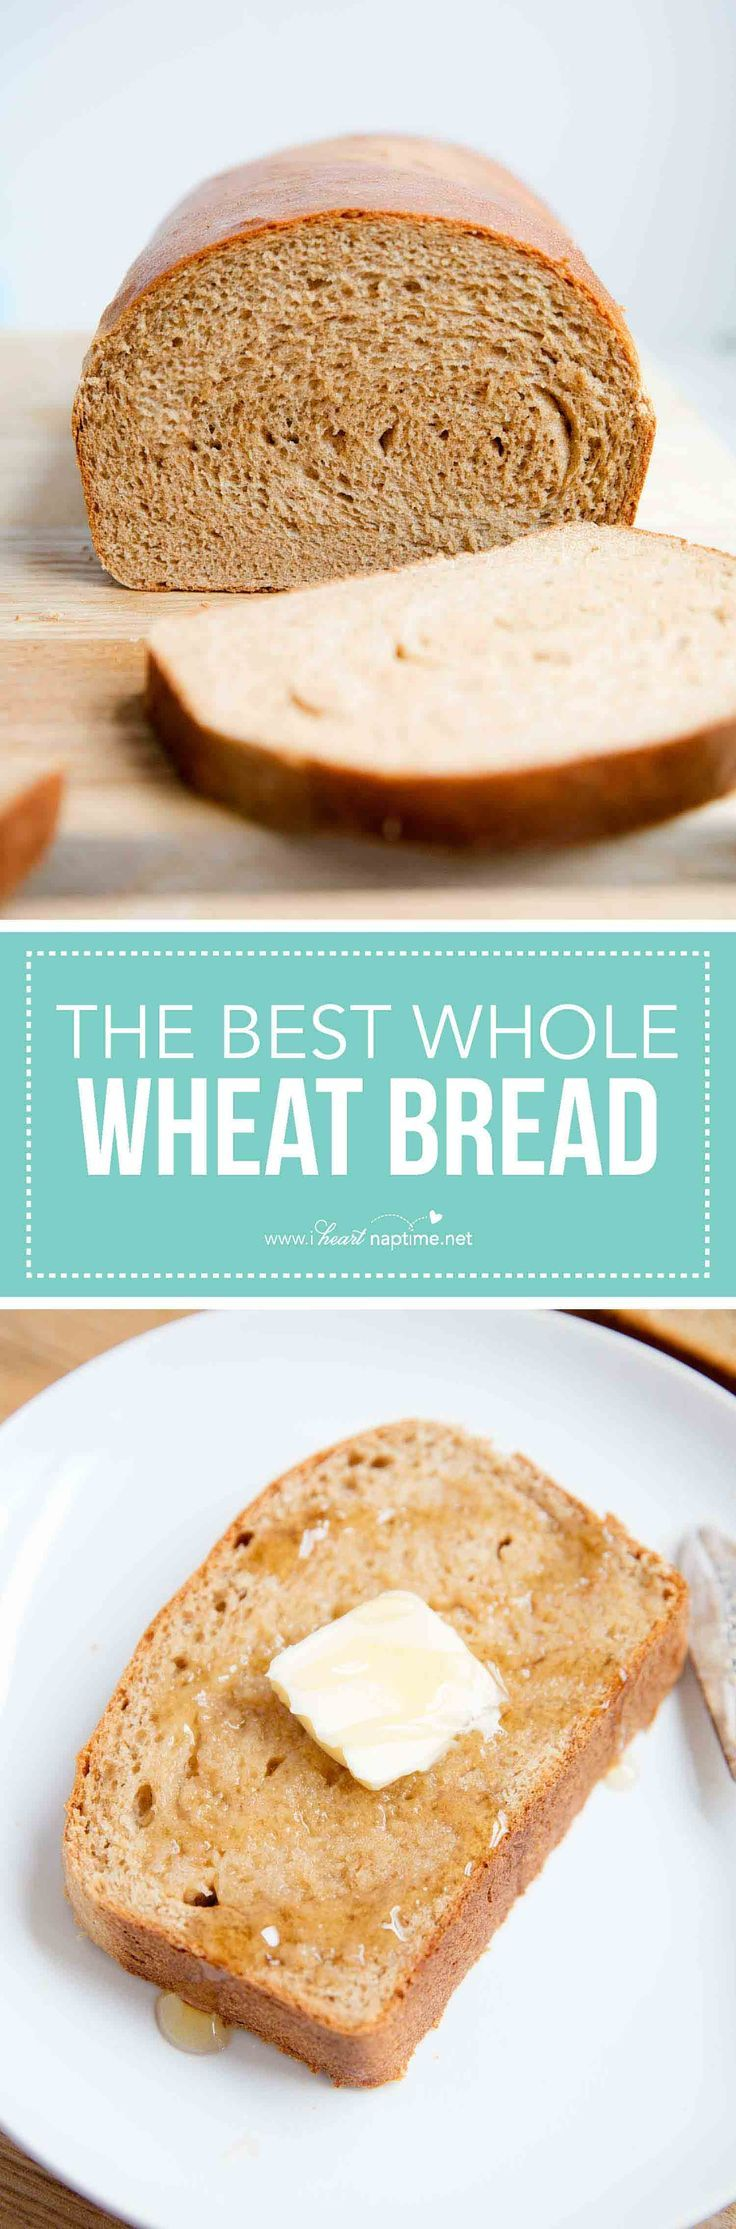 99 best Homemade Bread Recipes images on Pinterest | Bread recipes ...